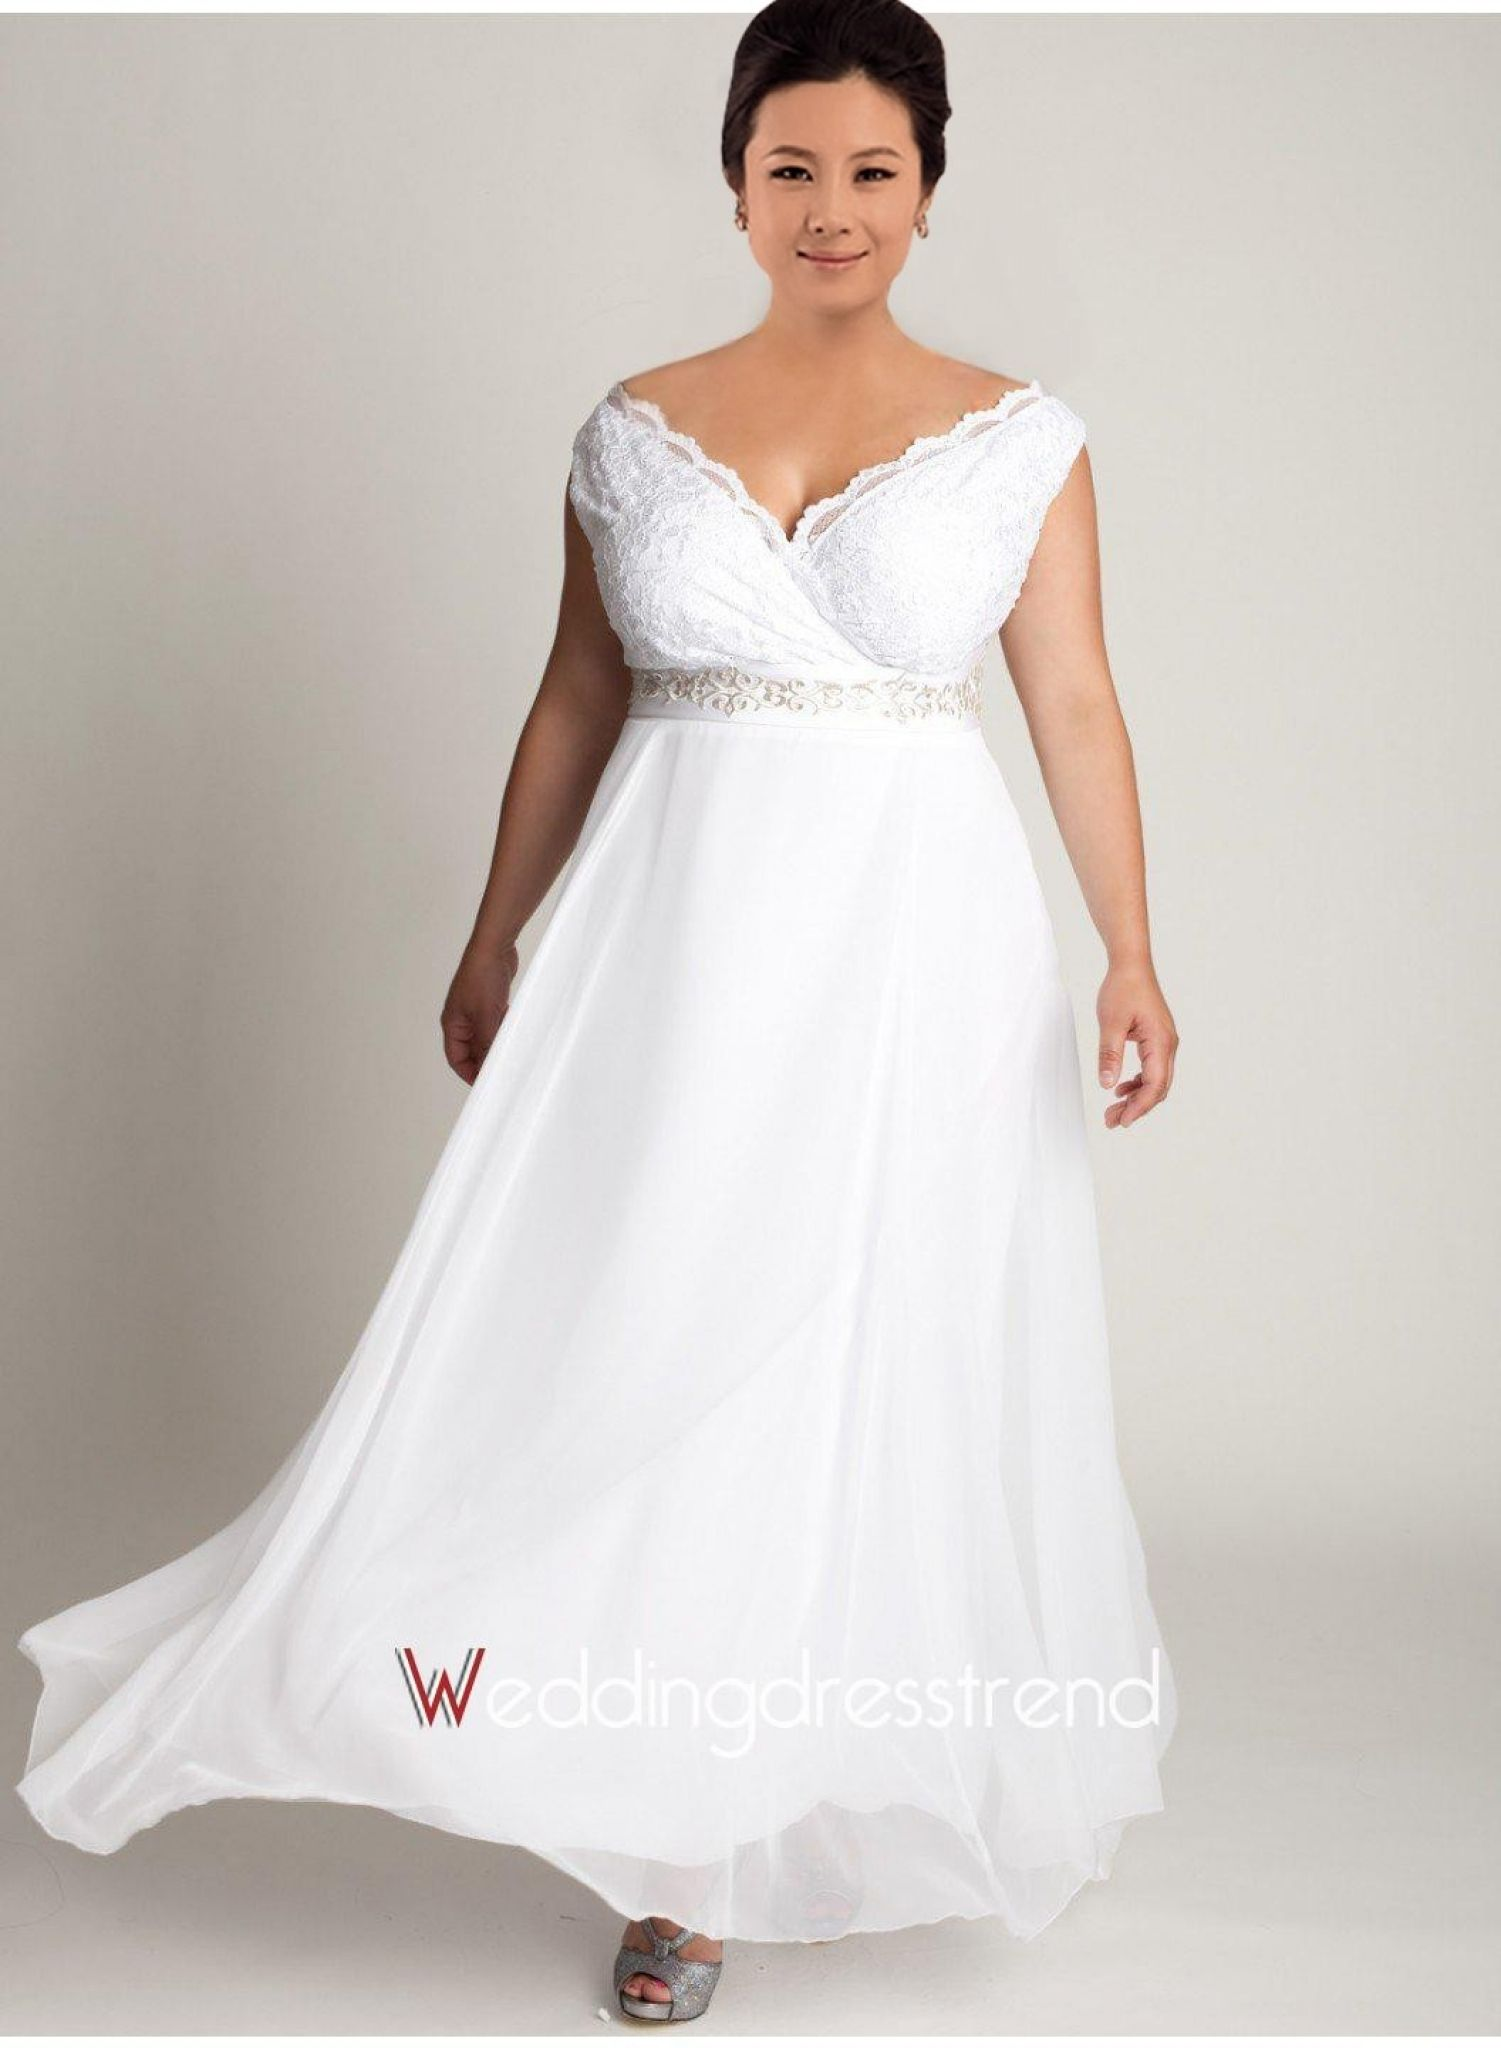 Simple white wedding dresses  simple wedding dress plus size  wedding dresses for fall Check more